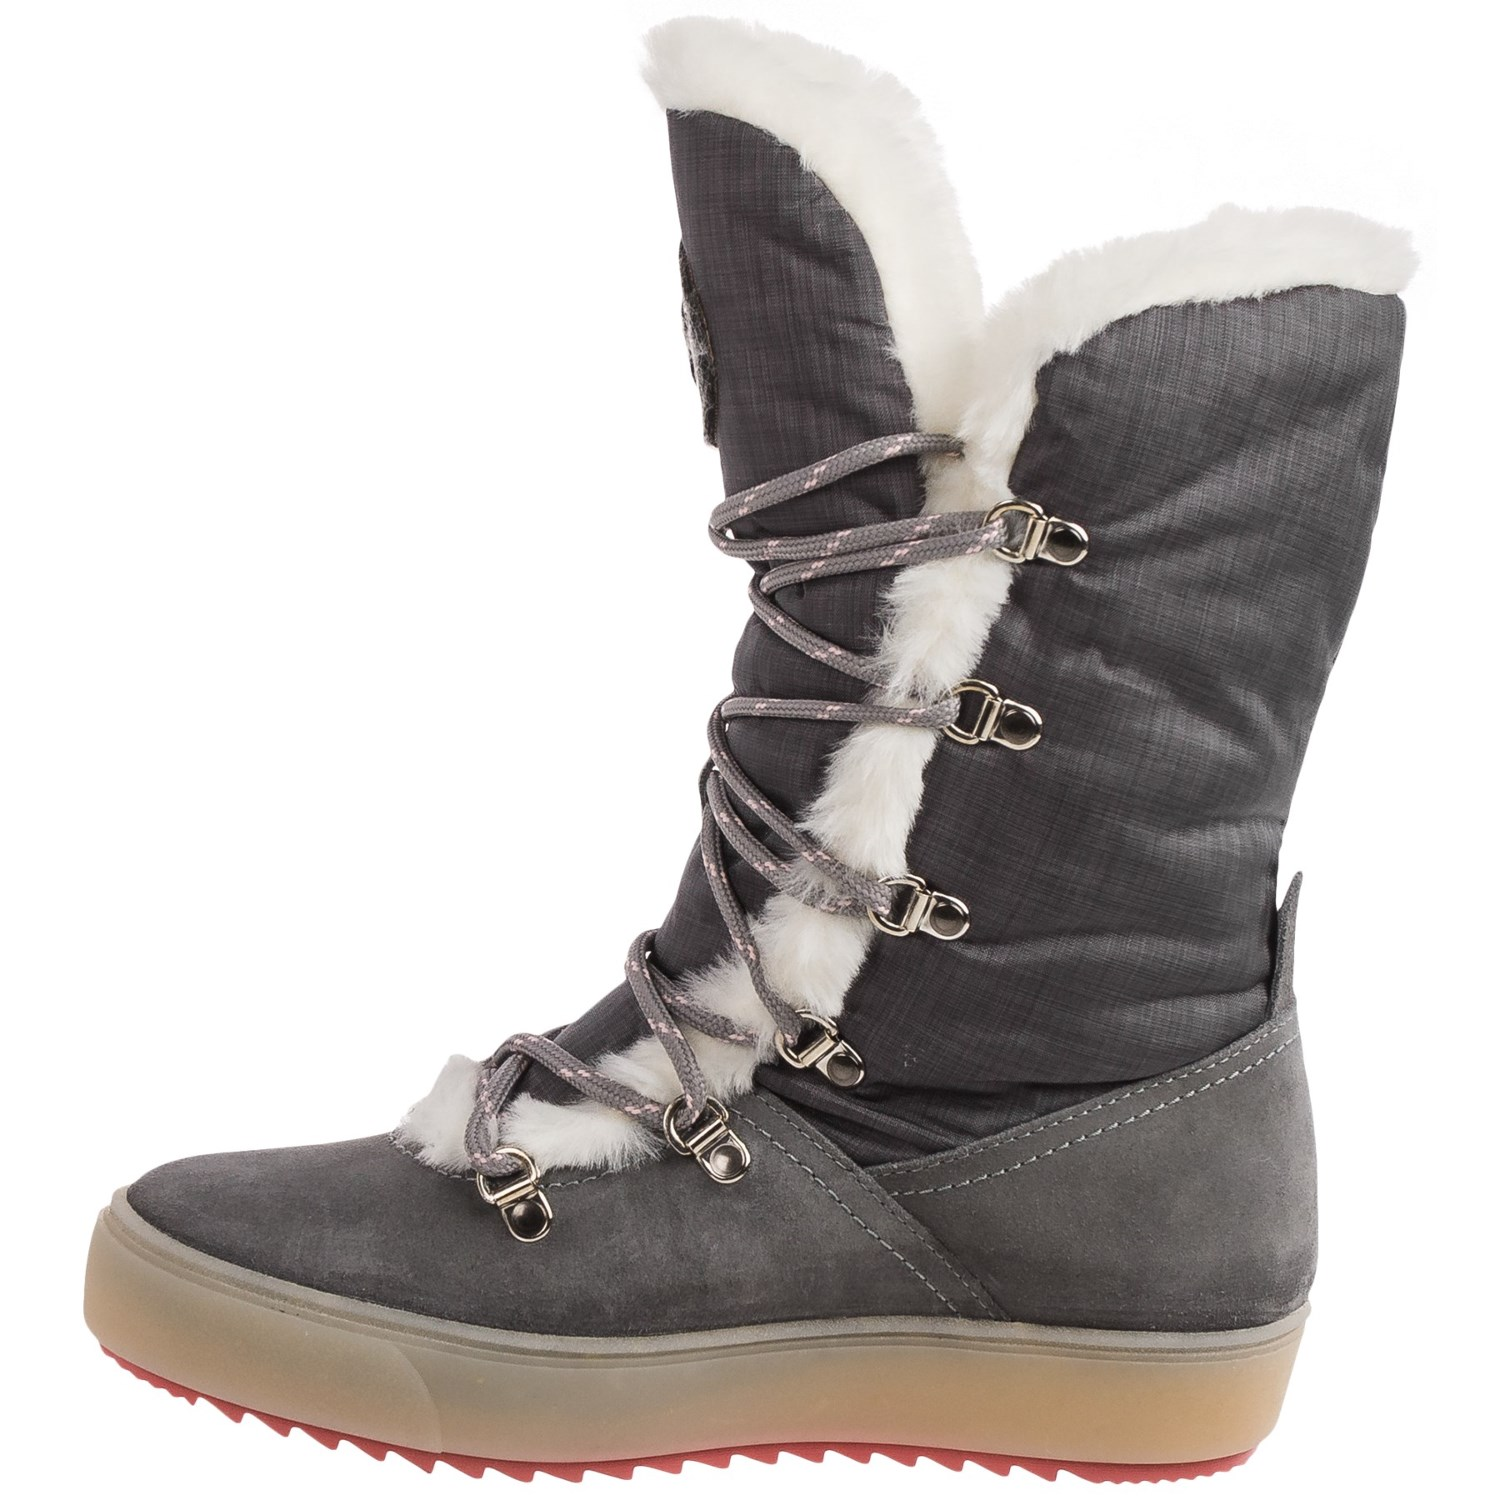 Santana Canada Montreaux Snow Boots (For Women) - Save 77%